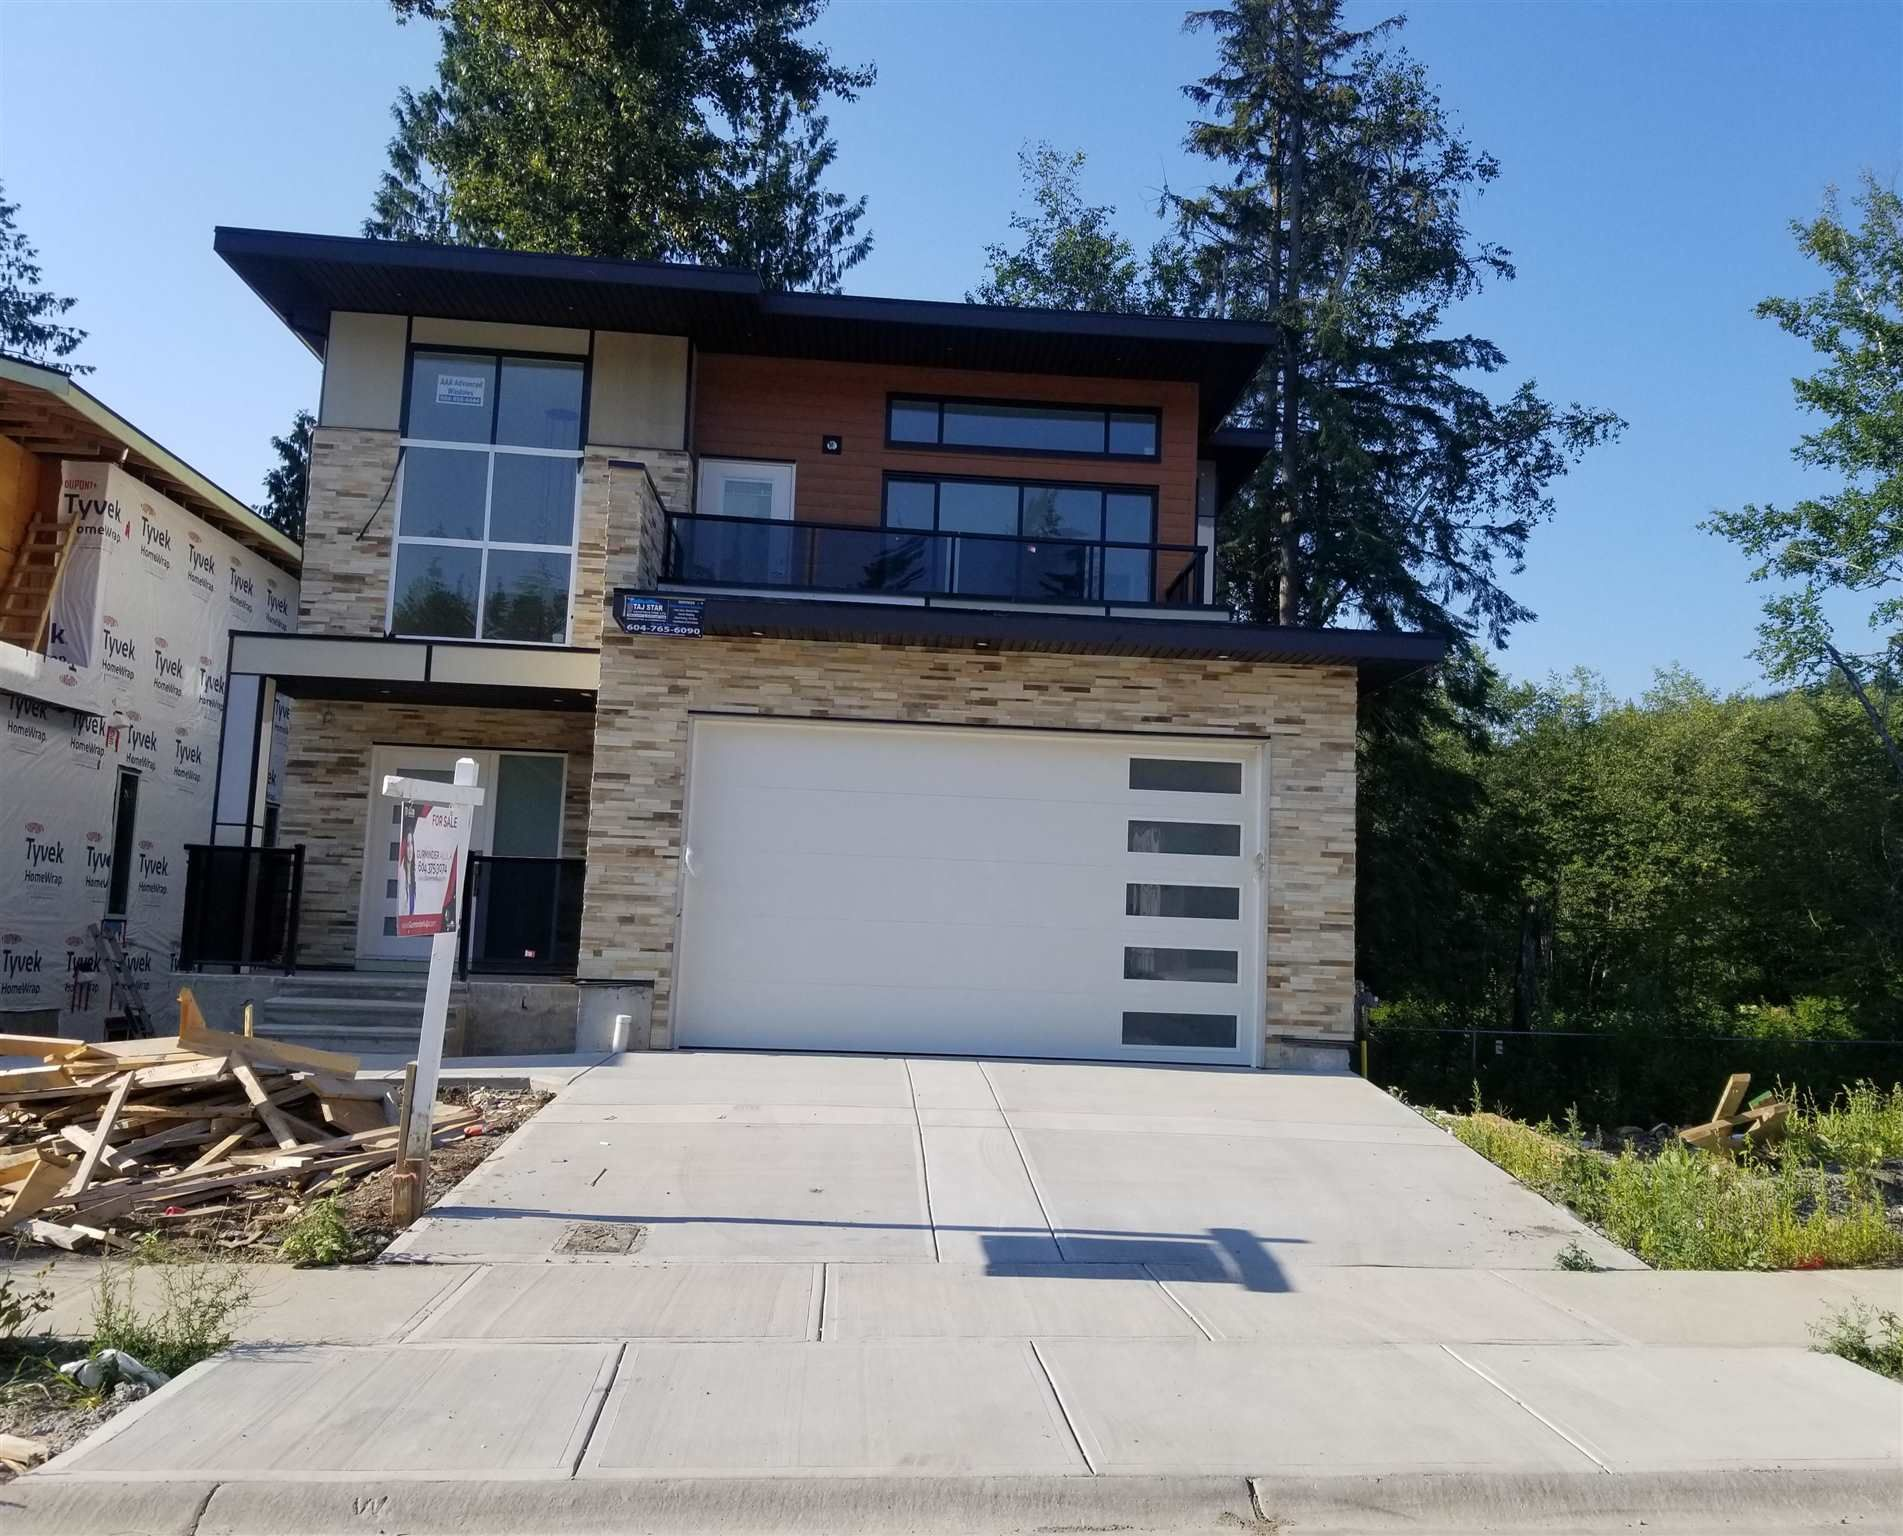 """Main Photo: 36713 CARL CREEK Crescent in Abbotsford: Abbotsford East House for sale in """"Dianne Brook Development"""" : MLS®# R2600811"""